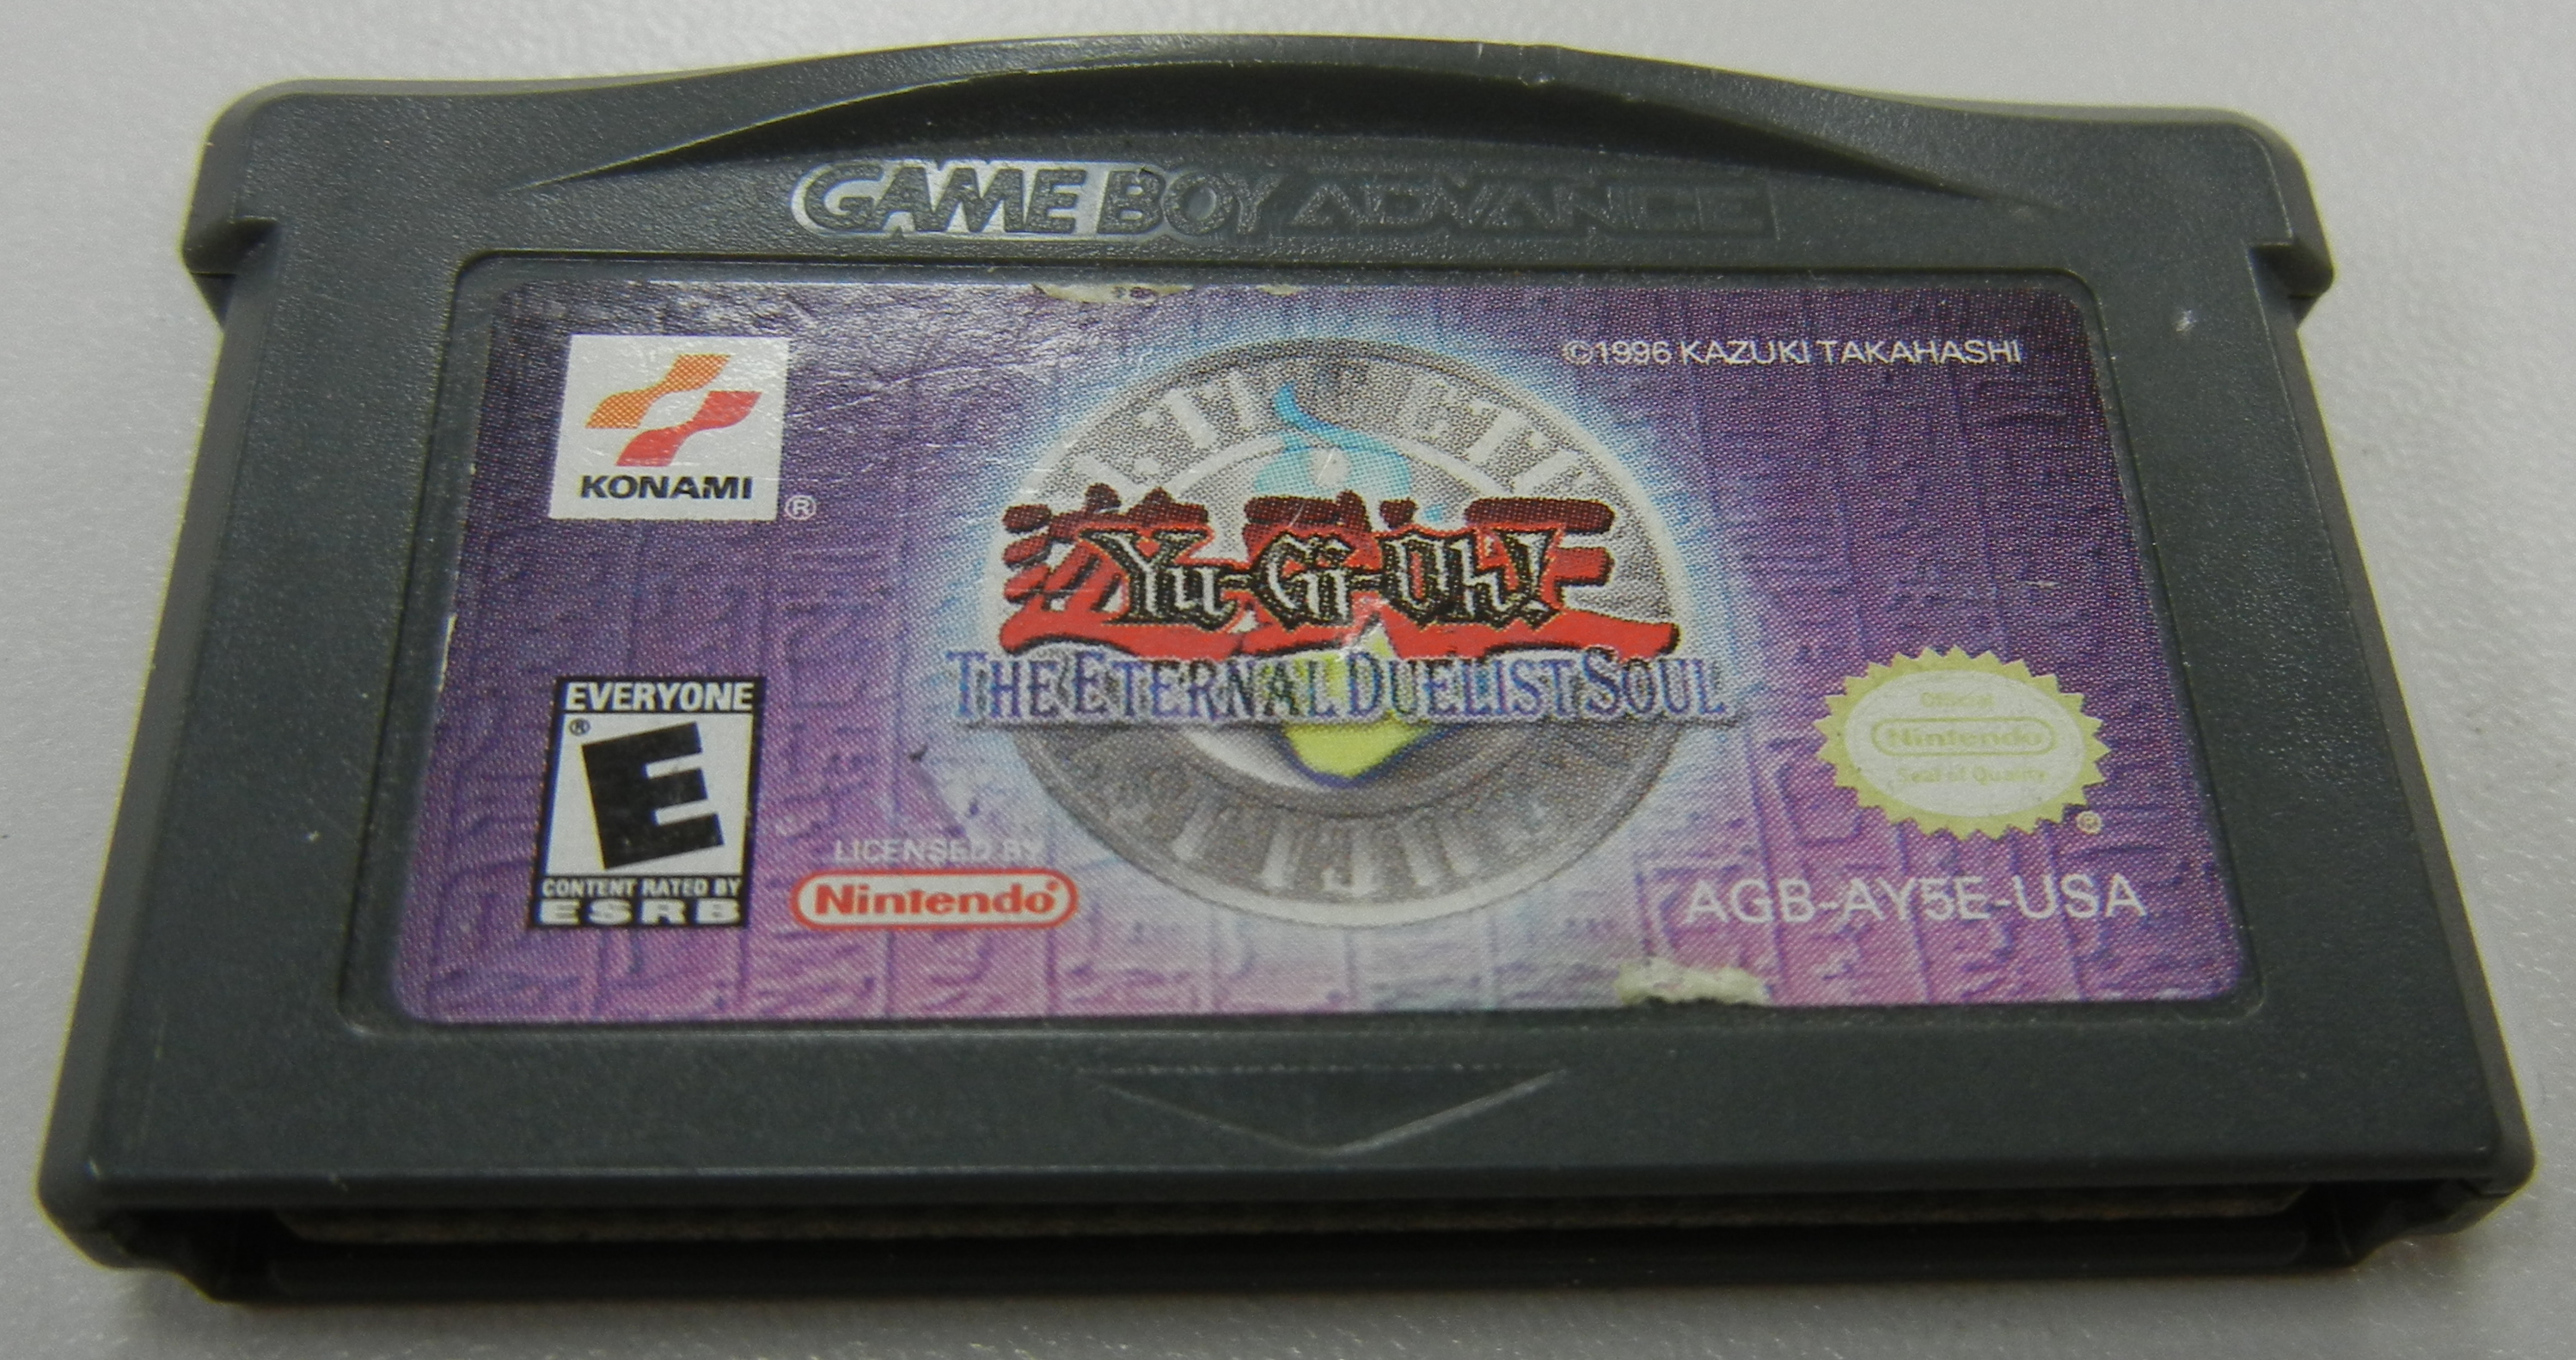 YU-GI-OH - THE ETERNAL DUELIST SOUL - GAMEBOY ADVANCE GAME